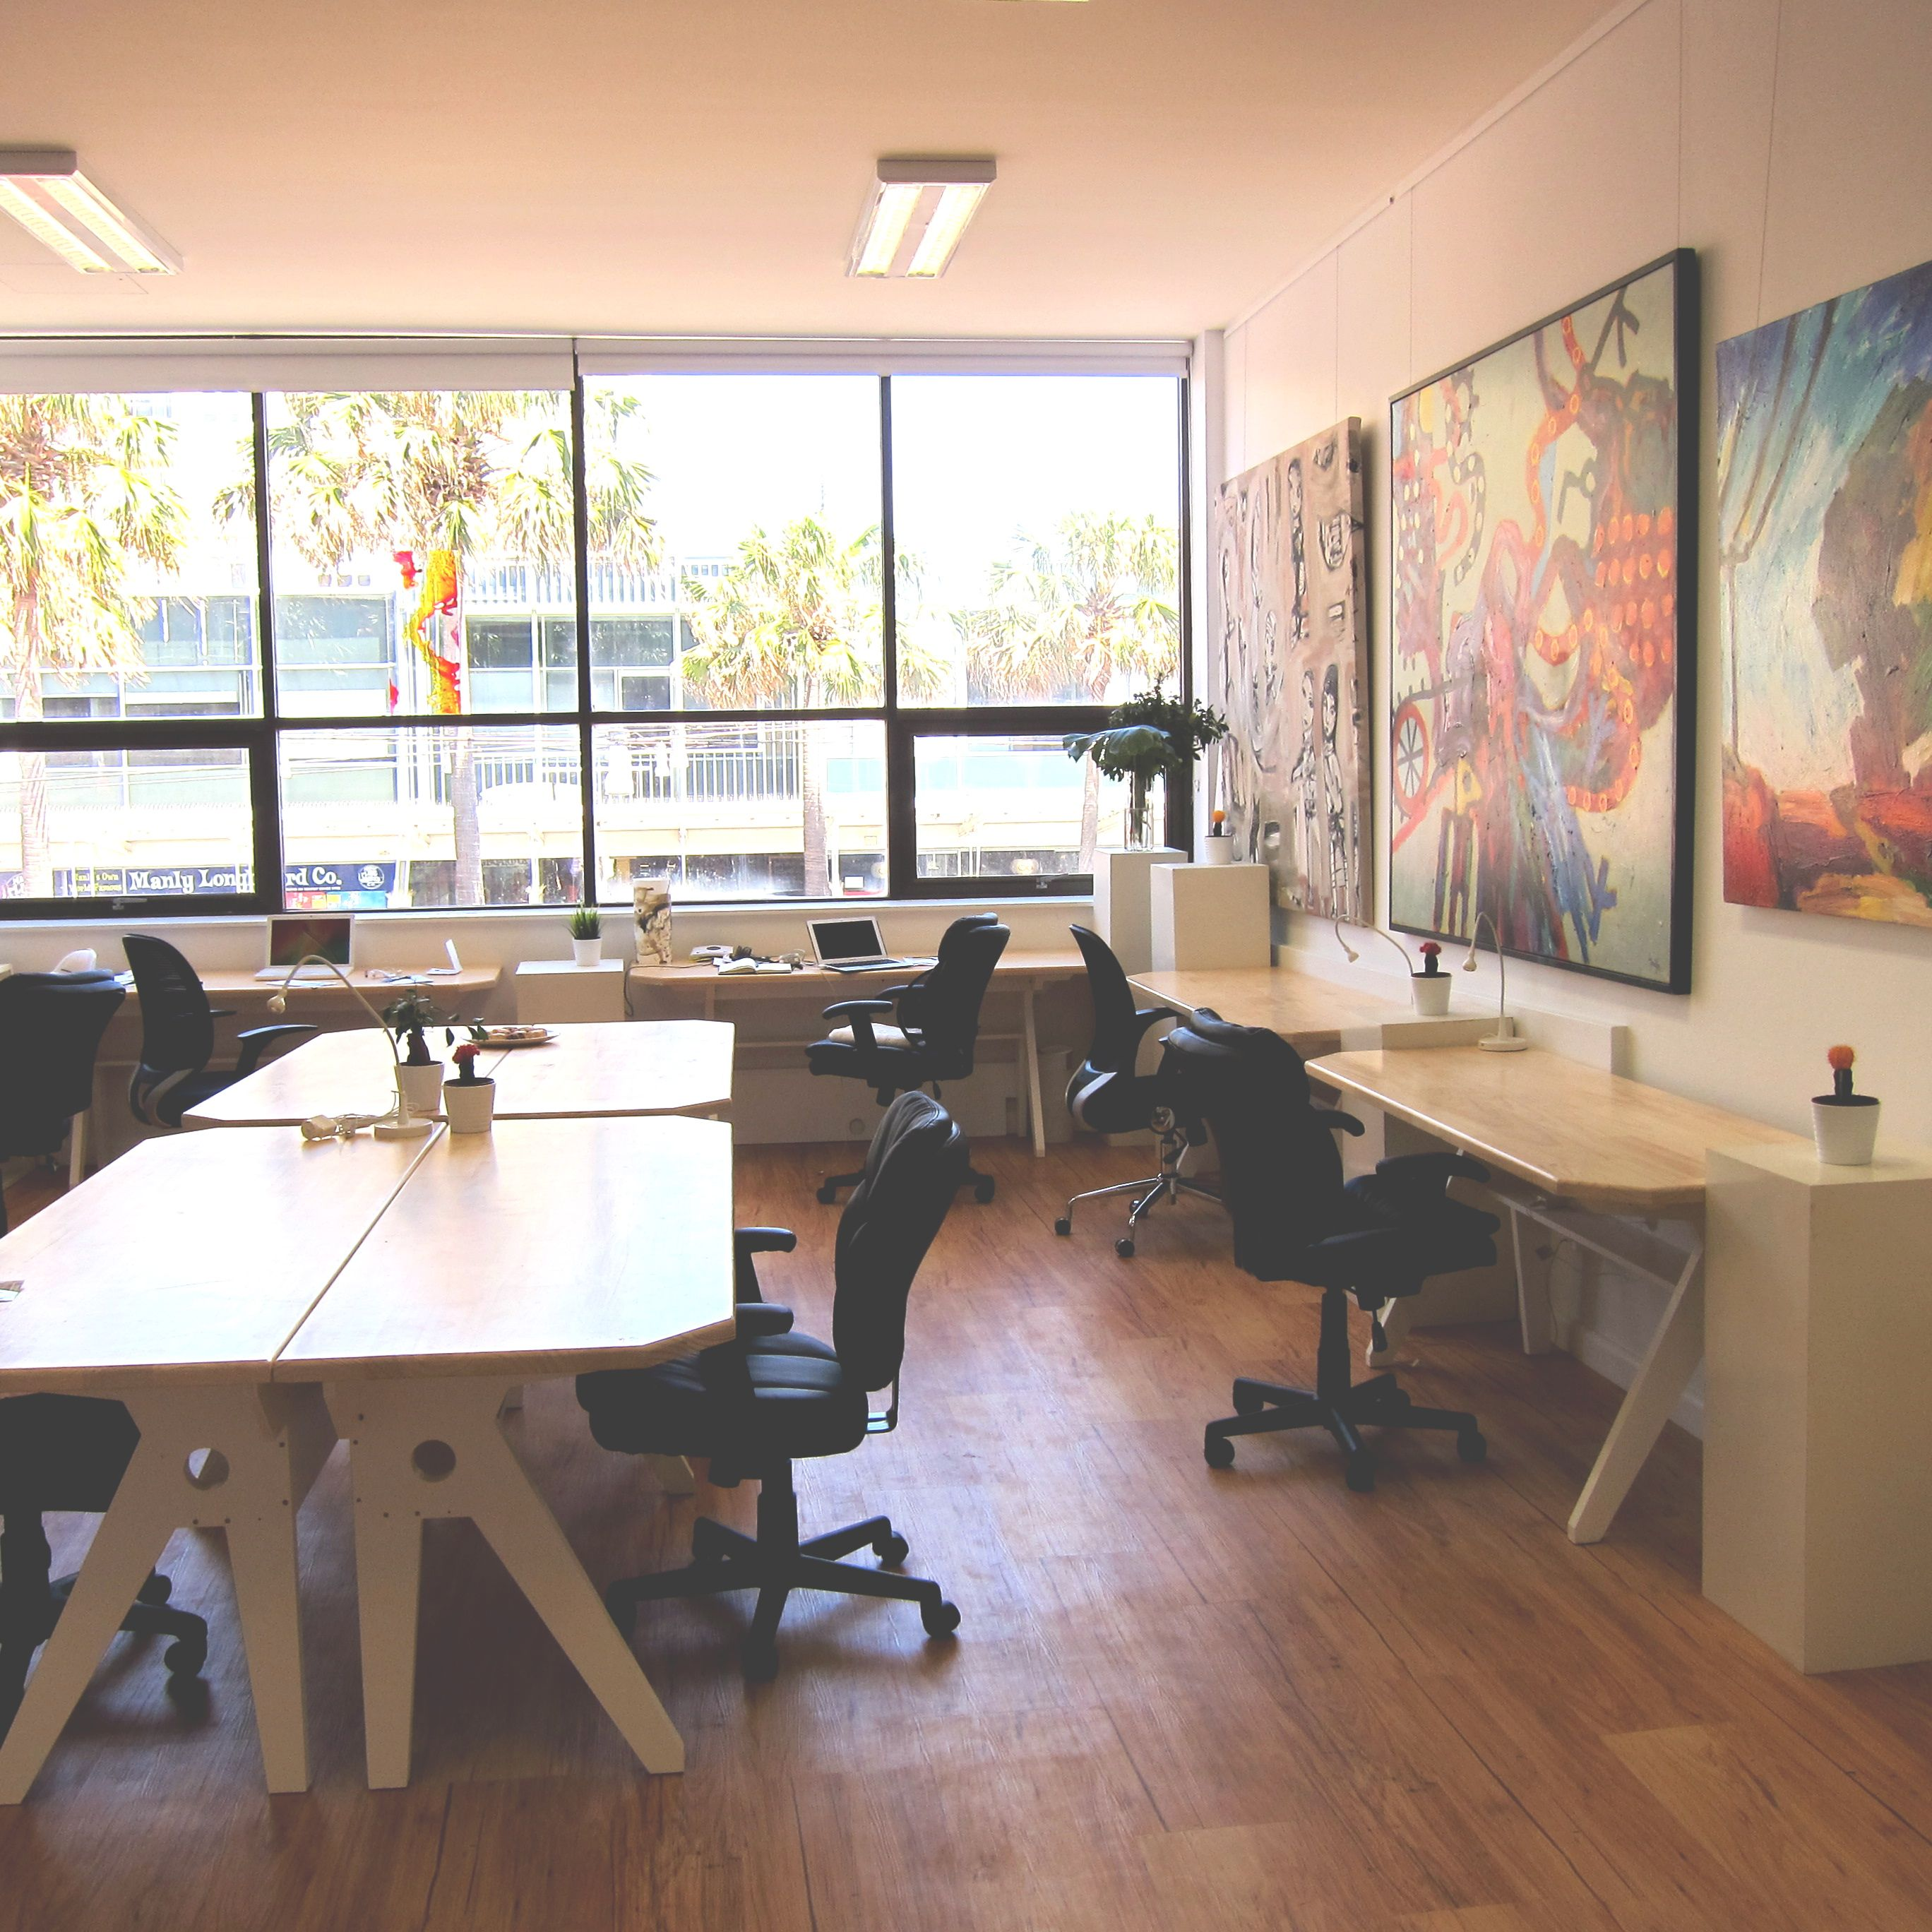 office space manly. Beautiful Custom Built Desks And An Inspiring Environment At The Manly Hub Co-working Space Office